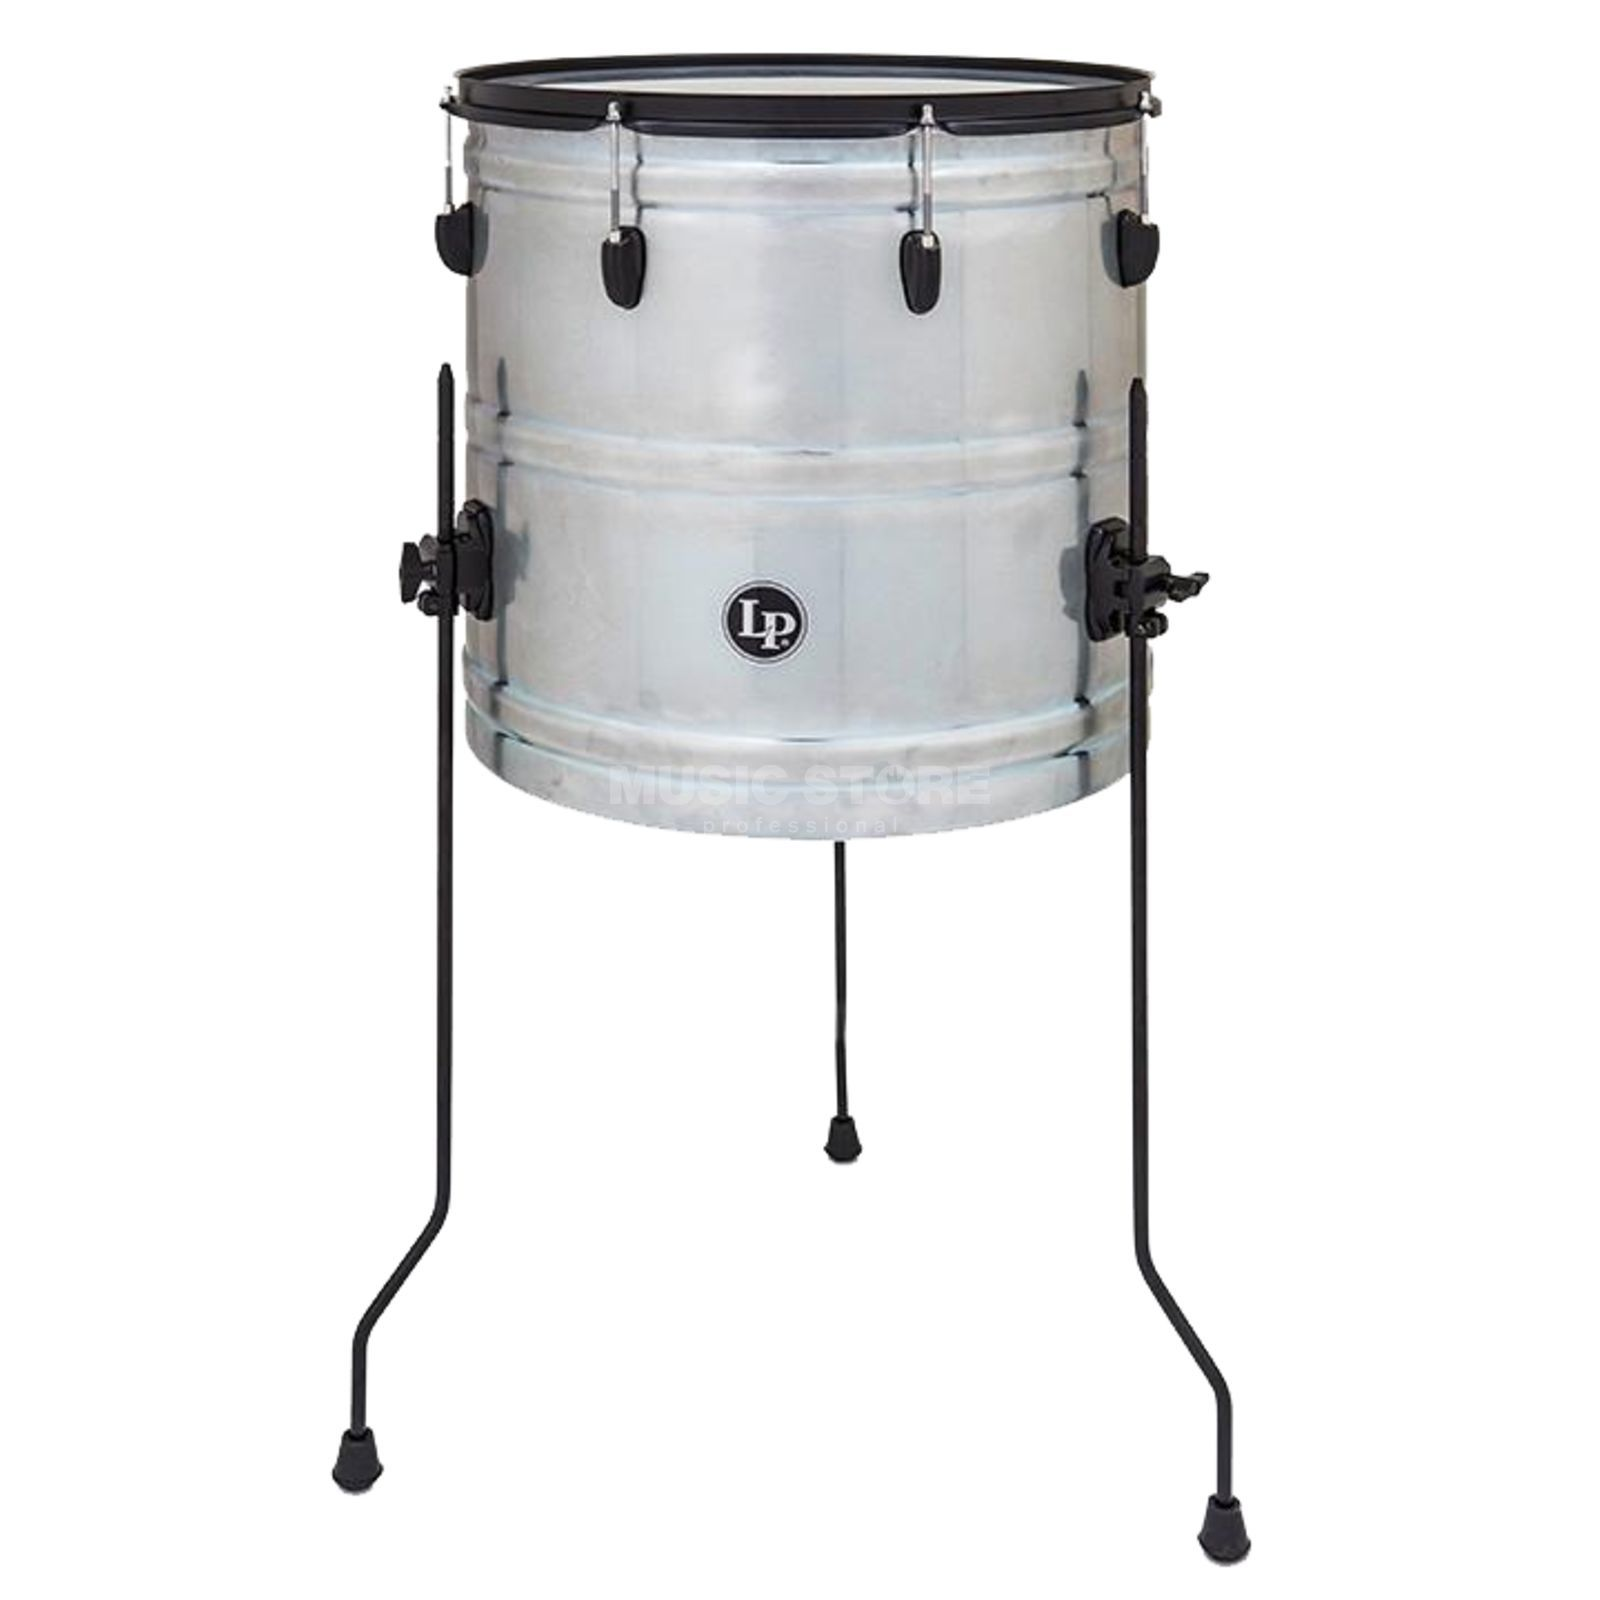 "Latin Percussion Street Can Drum LP1618, 18"", Raw Series Produktbild"